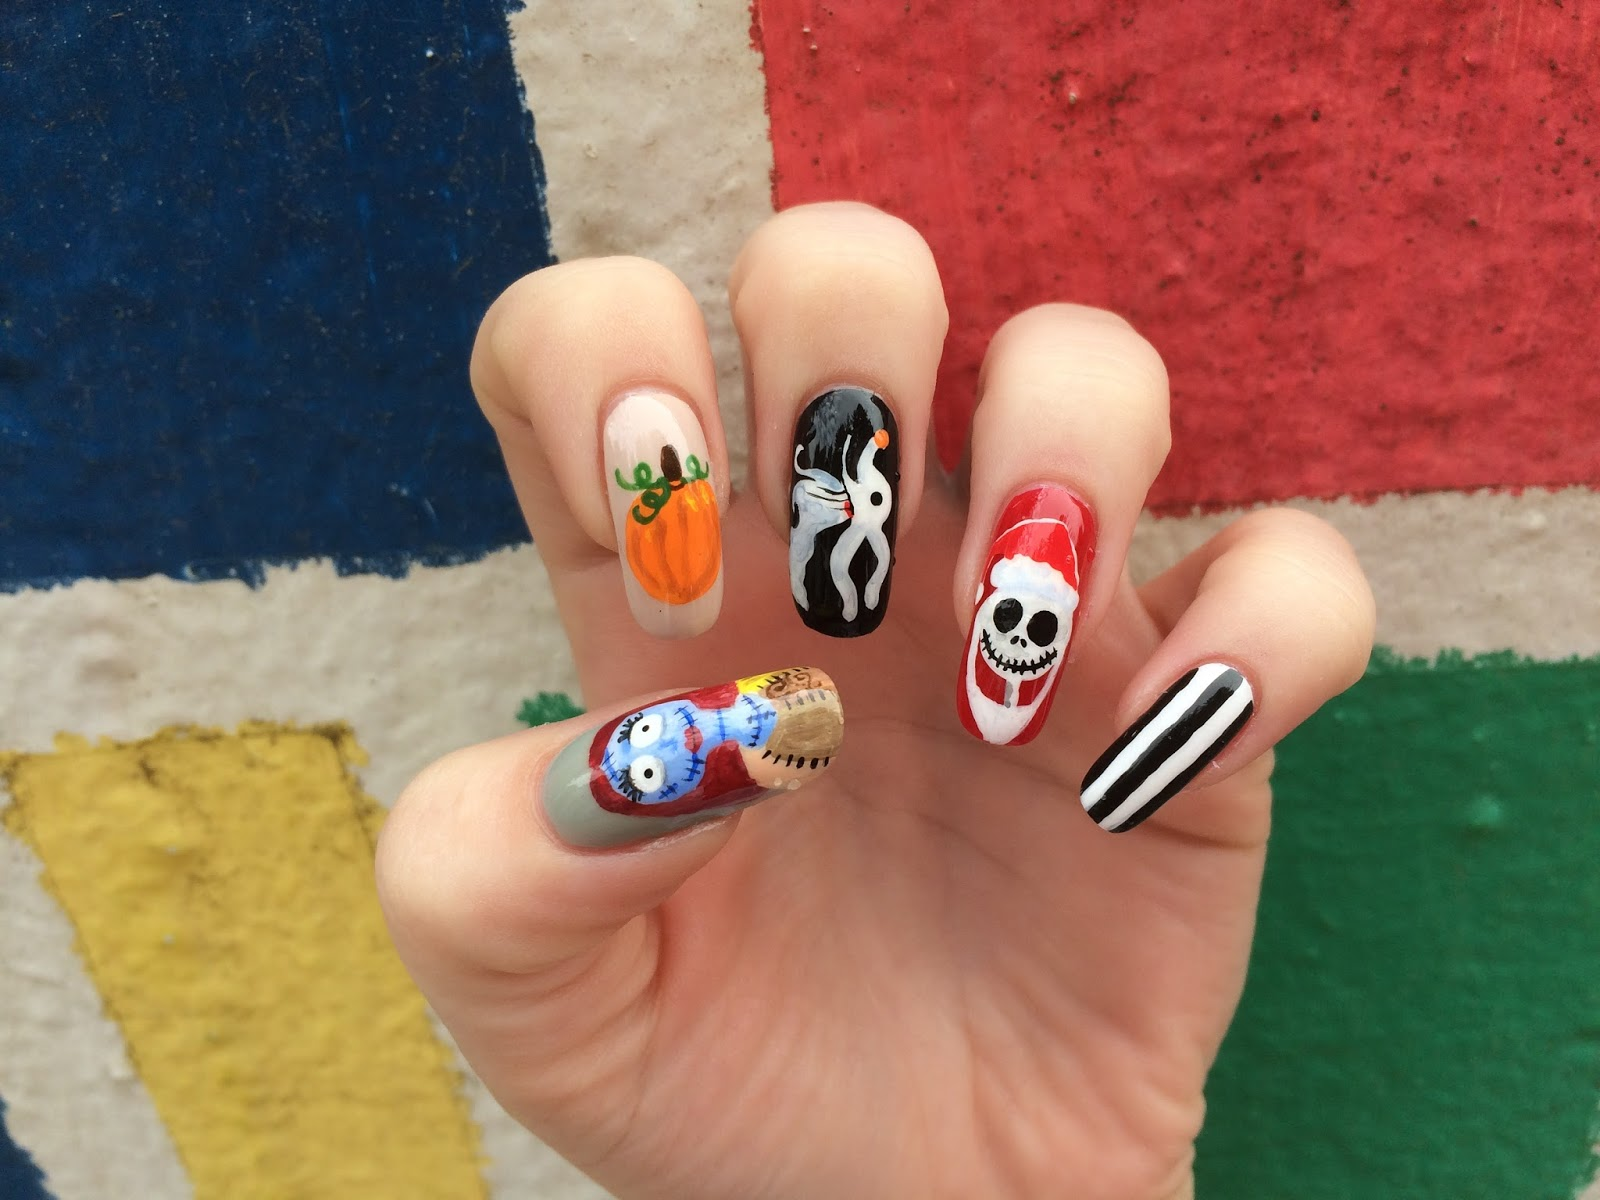 continuing on with the halloween spirit this week i featured nightmare before christmas characters on my nails these were really fun to do